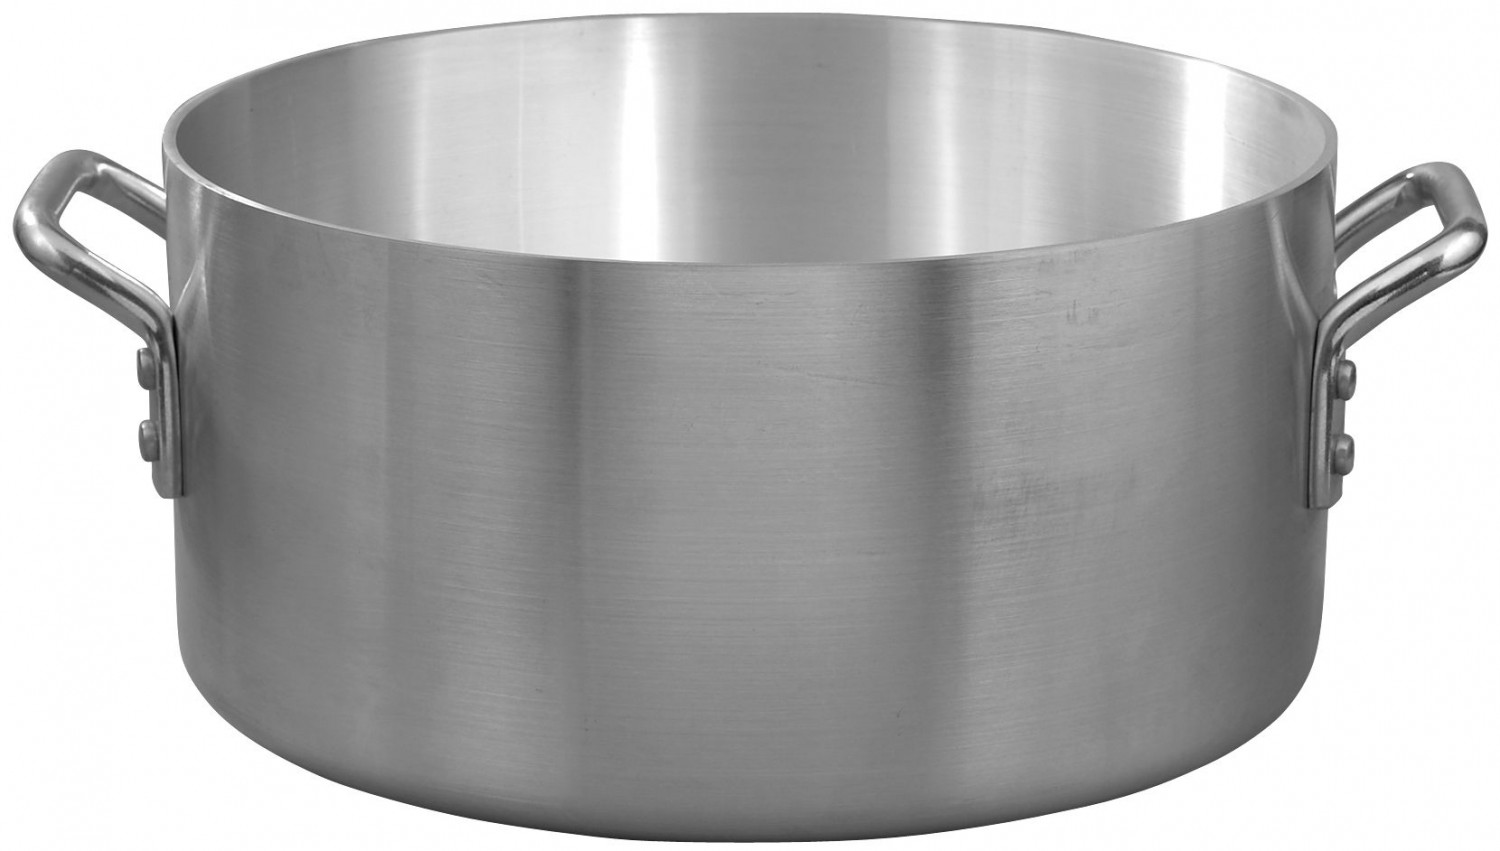 Winco APS-PT Pasta Cooker Replacement Pot 20 Qt.